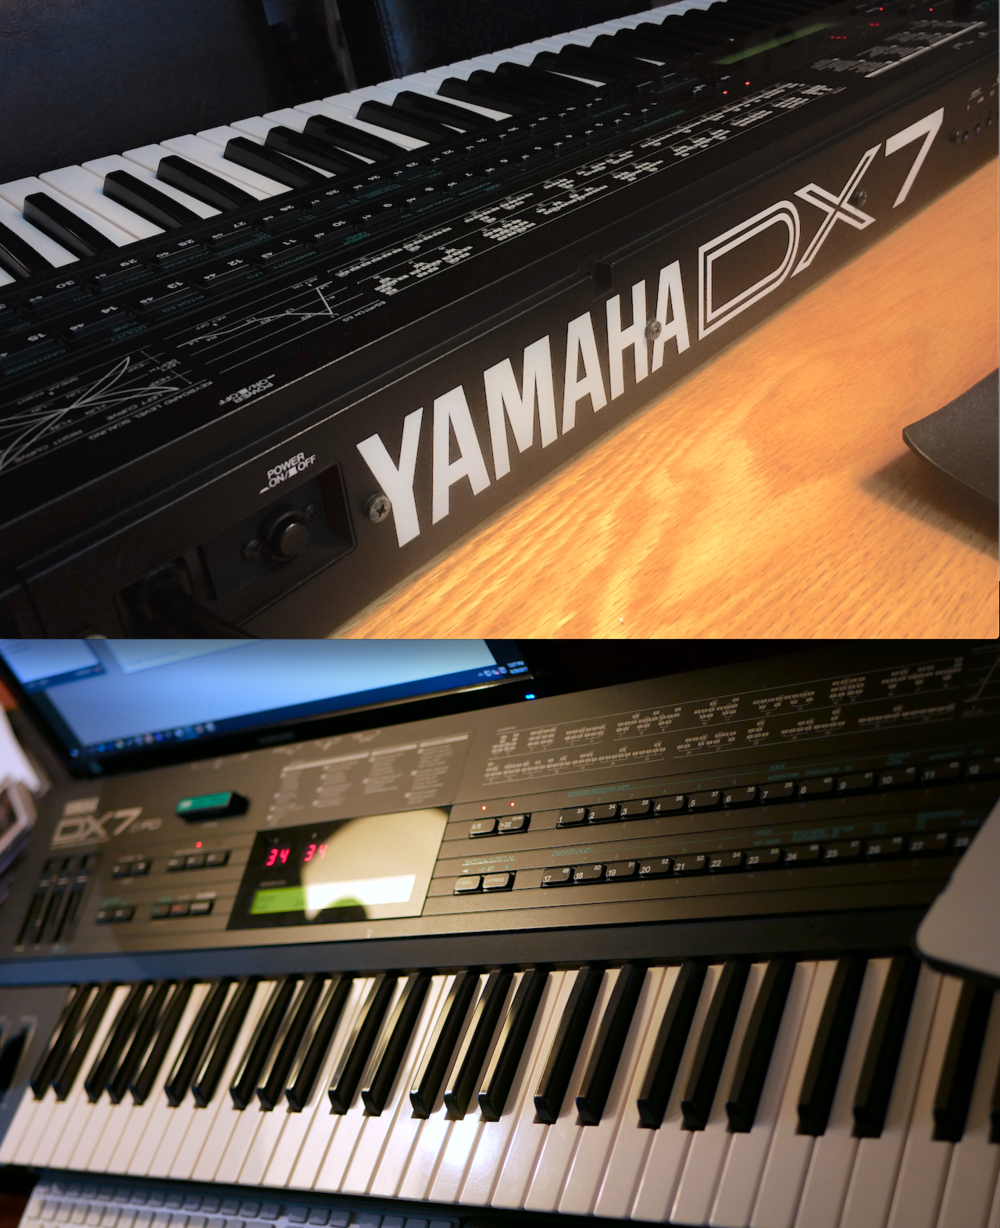 *THE* iconic synth of the 80's - a top-of-the-line Yamaha DX7IIFD in stunningly mint condition - not a scratch or dent anywhere! The equivalent of 2 original DX7's in one keyboard, with more polyphony, more memory, stereo outputs and much better sound quality - and still one of the best-feeling key beds ever made. This one could be a museum piece in this condition - quite a rare find. Asking $600 plus shipping. Email gear4sale@charter.net